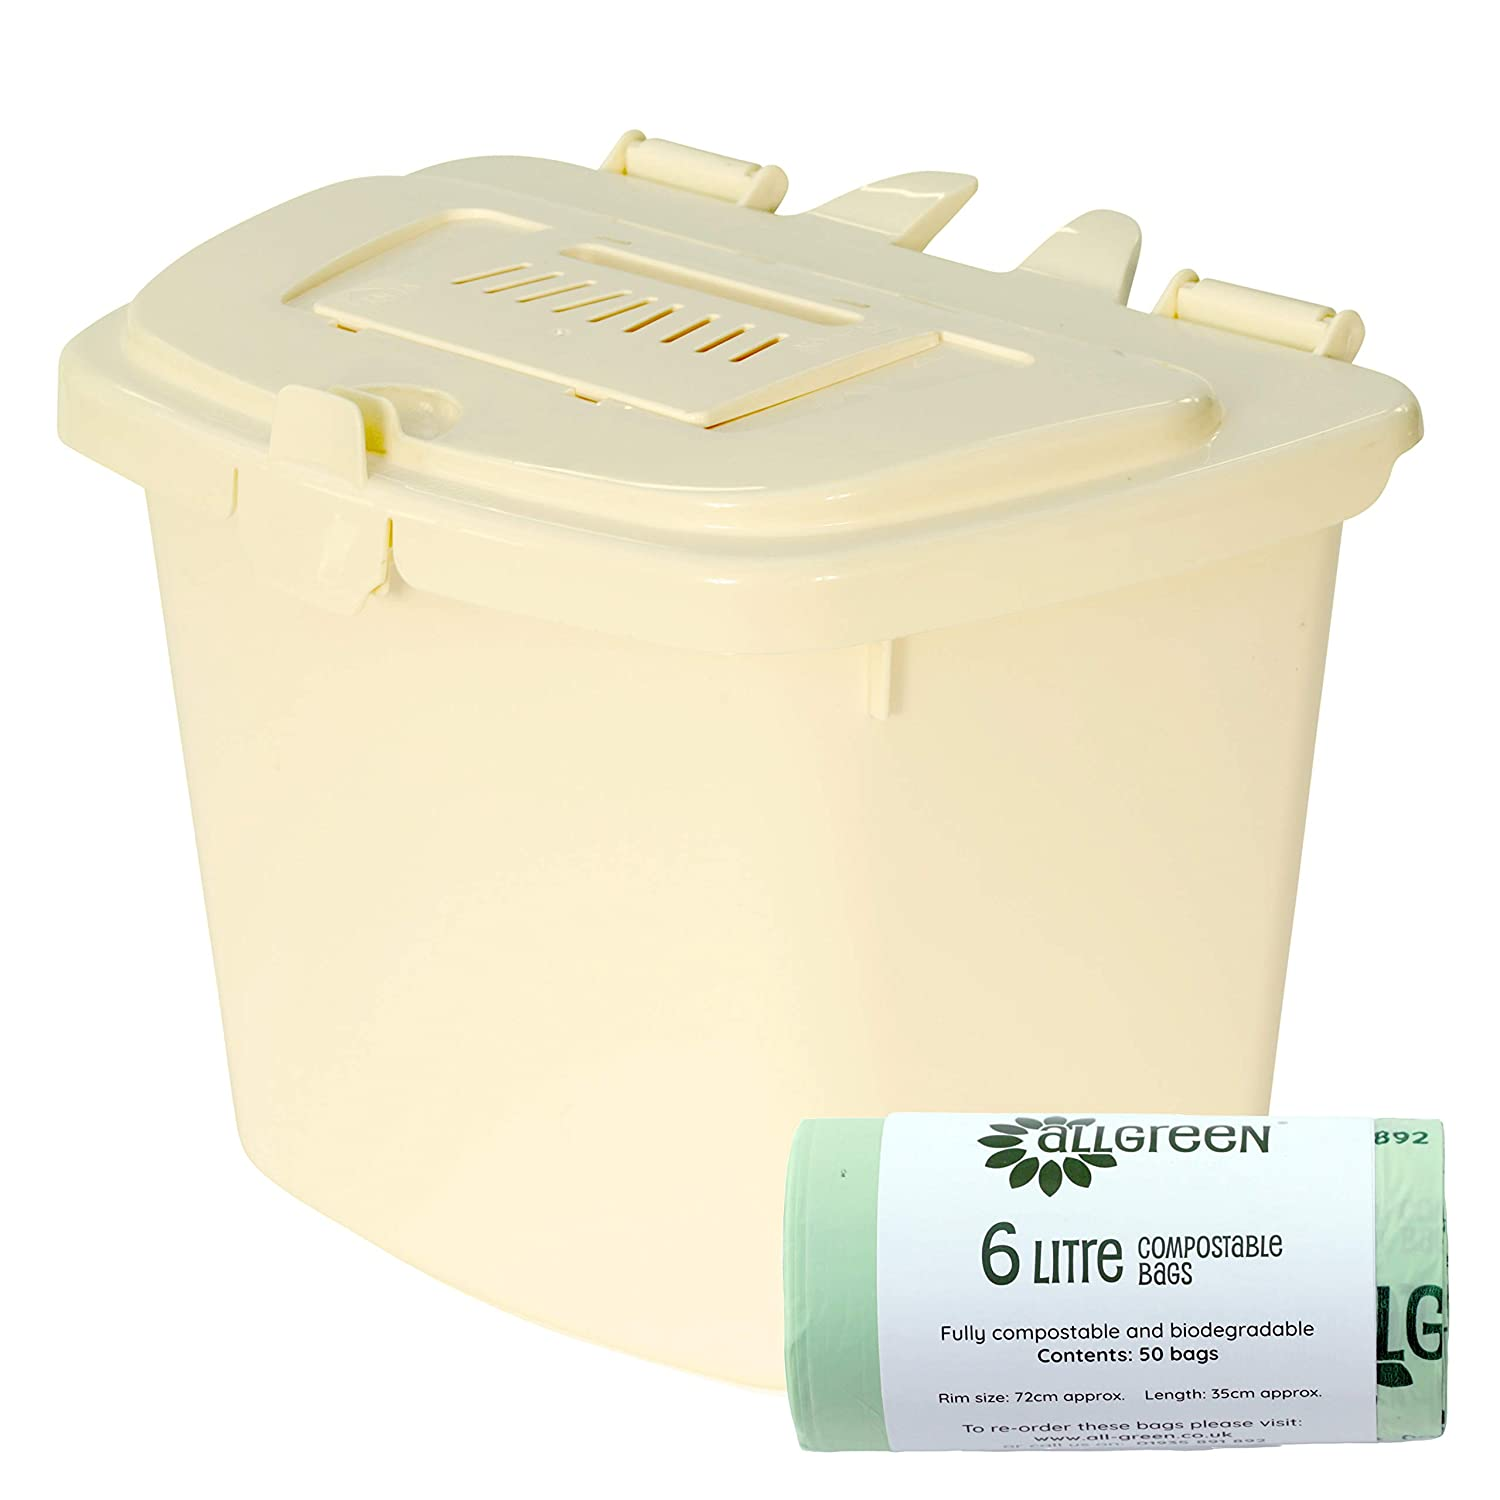 All-Green Cream 5L Vented Kitchen Compost Caddy & 50x Compostable Bags- Composting Bin for Food Waste Recycling